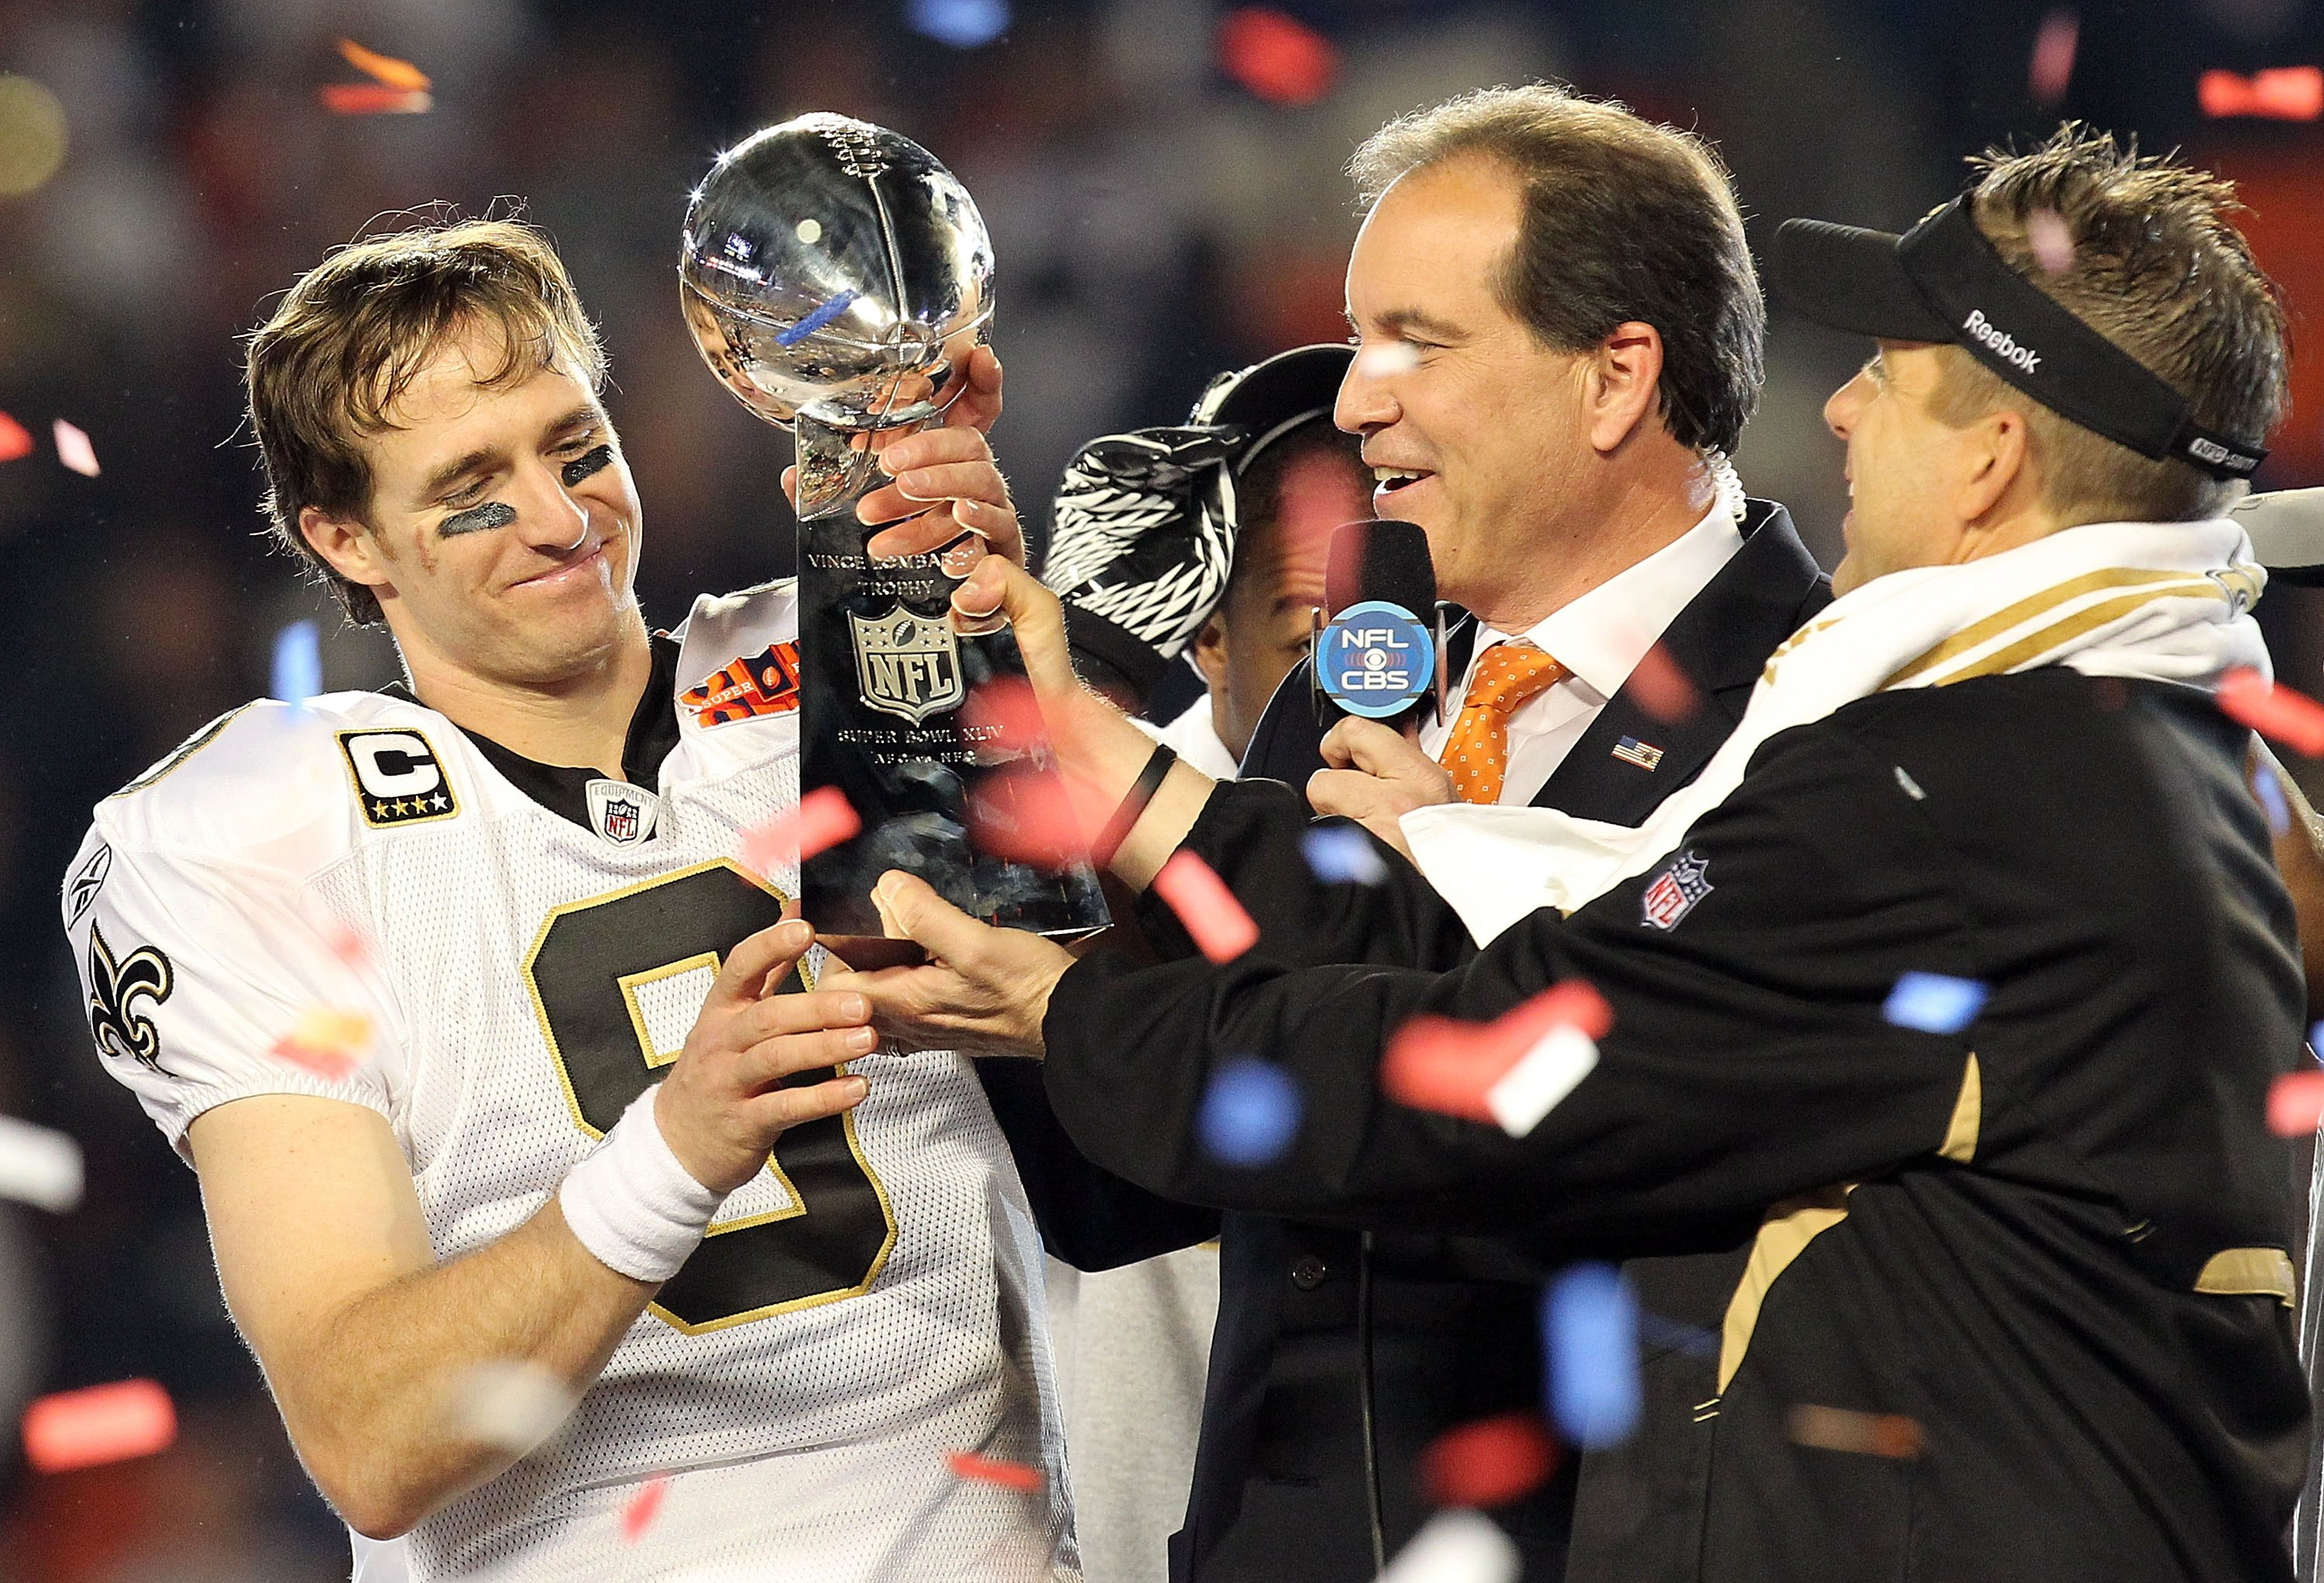 MIAMI GARDENS, FL - FEBRUARY 07:  Head coach Sean Payton of the New Orleans Saints passes quarterback Drew Brees #9 the Vince Lombardi trophy after defeating the Indianapolis Colts during Super Bowl XLIV on February 7, 2010 at Sun Life Stadium in Miami Ga